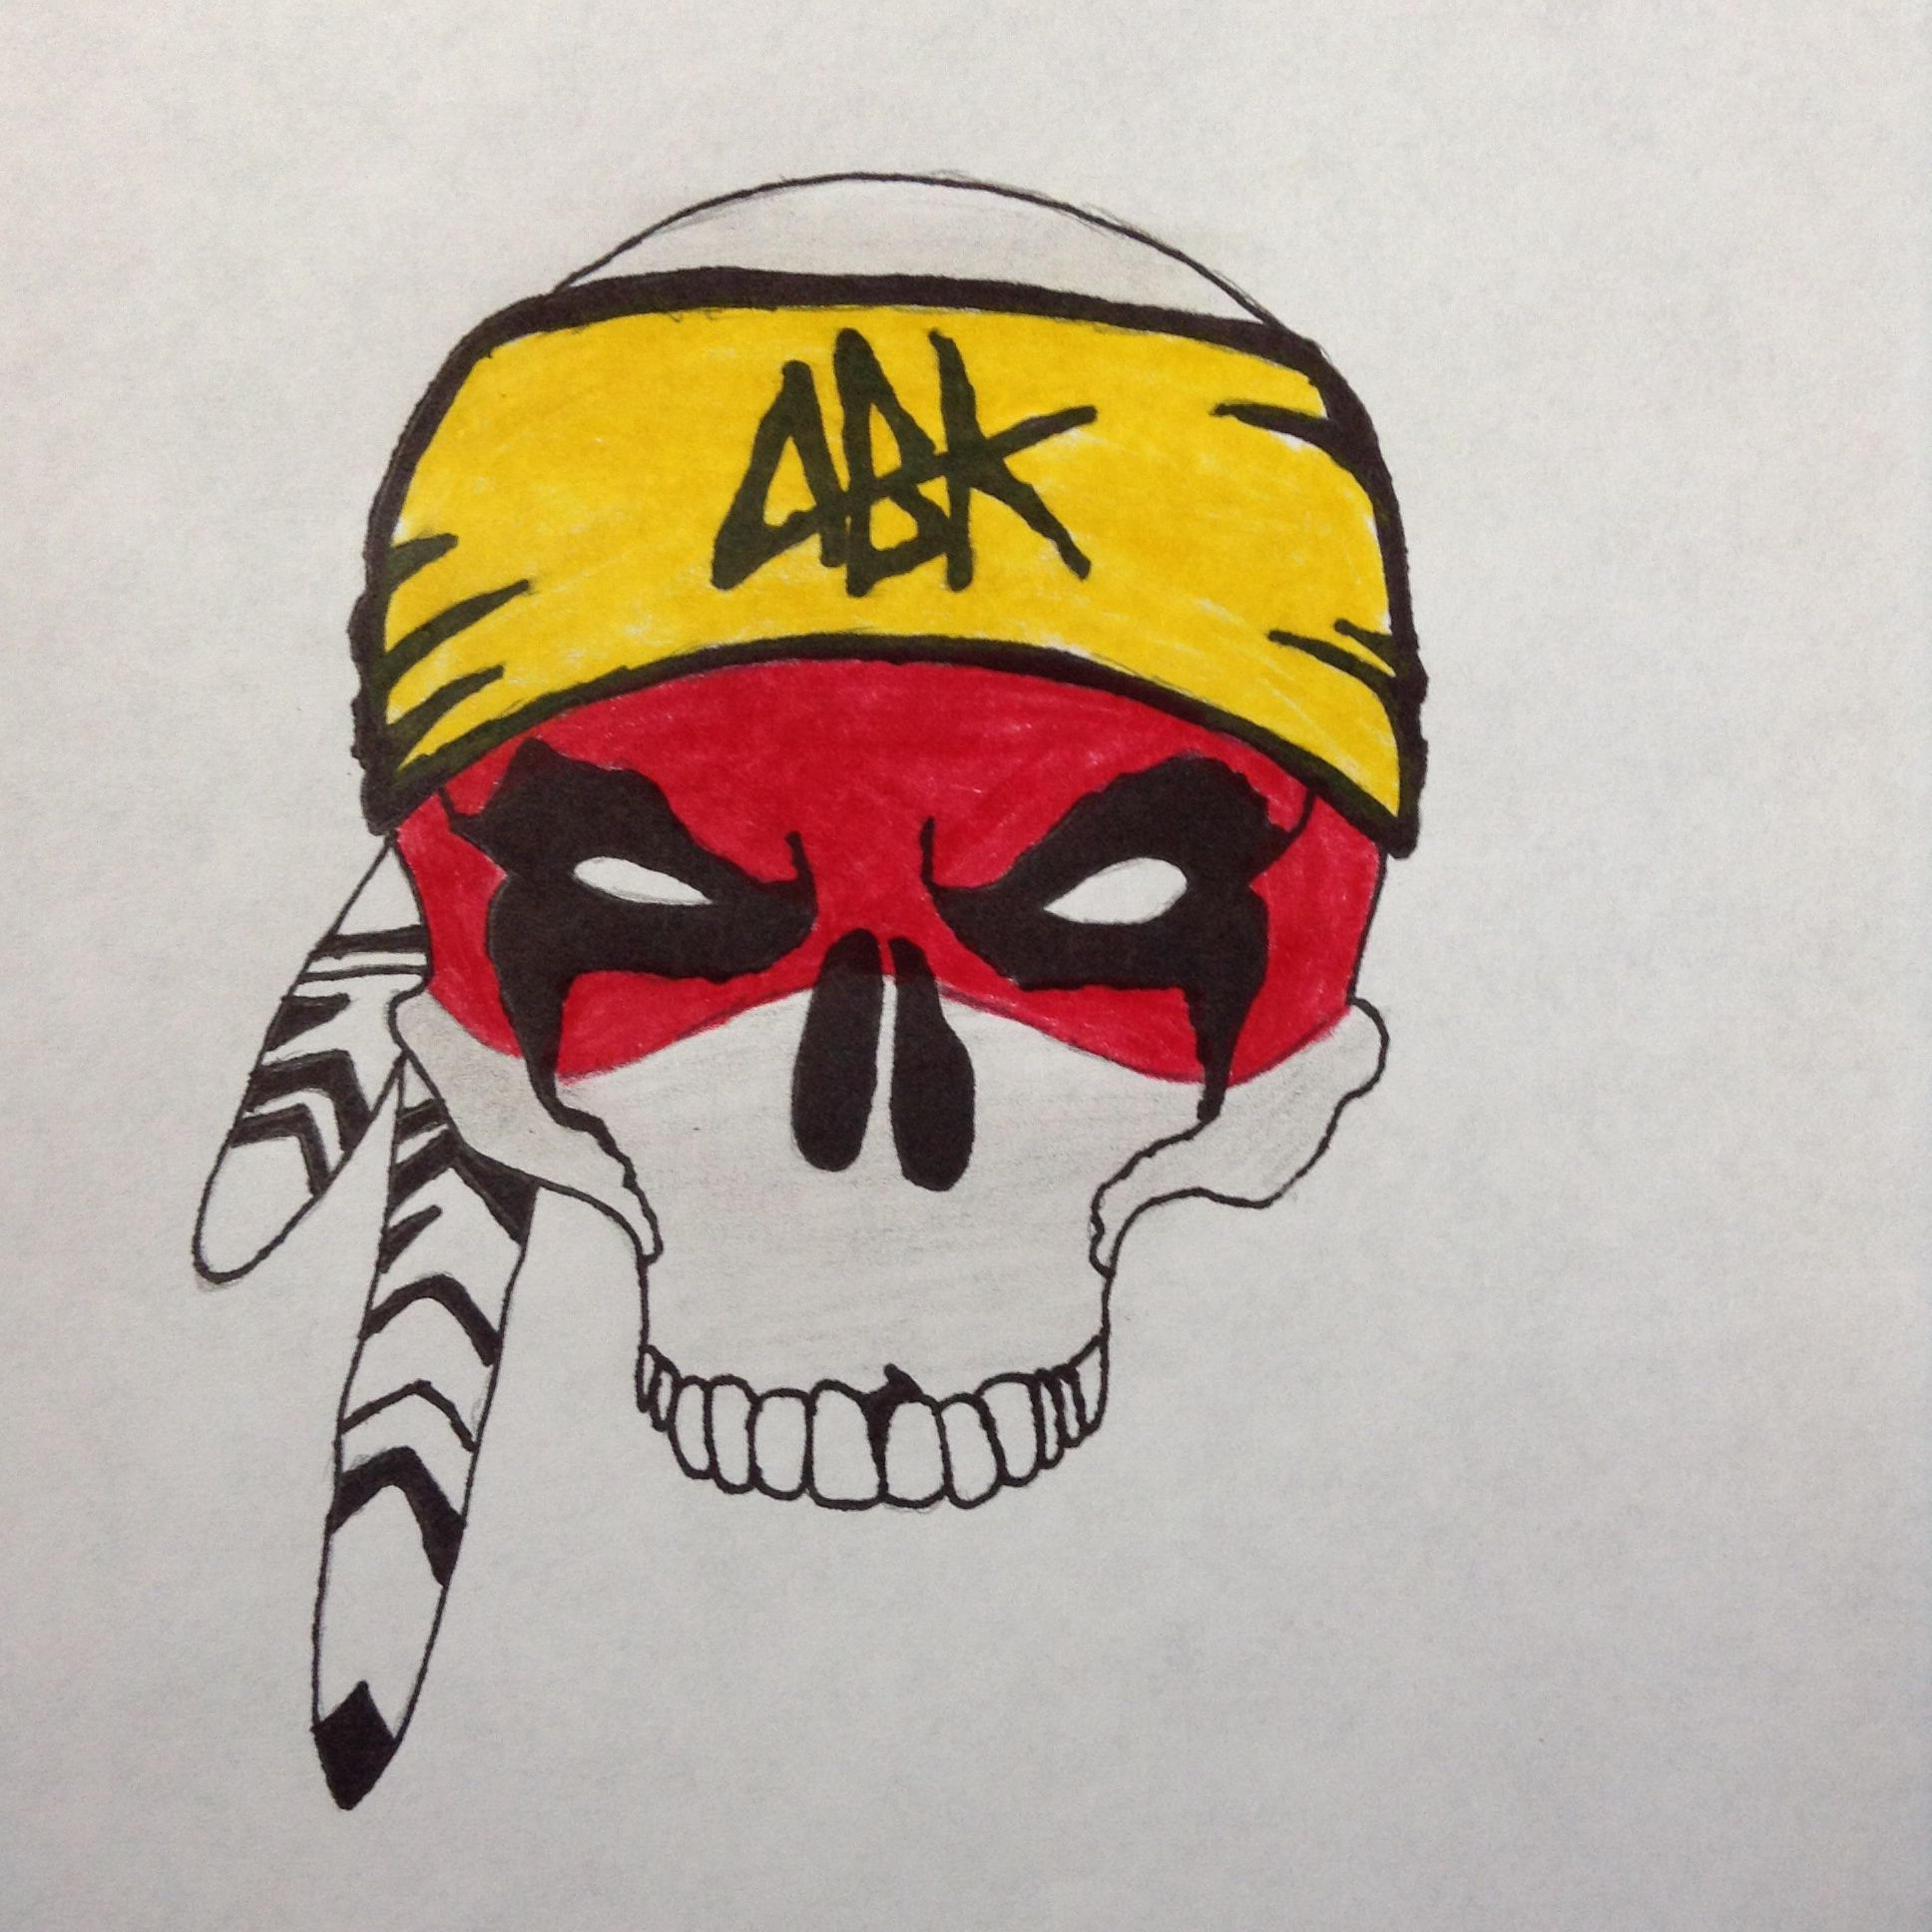 Abk Skull Logo Want To See More Go Follow My Drawing Account I Post There First Skull Art My Drawings Drawings